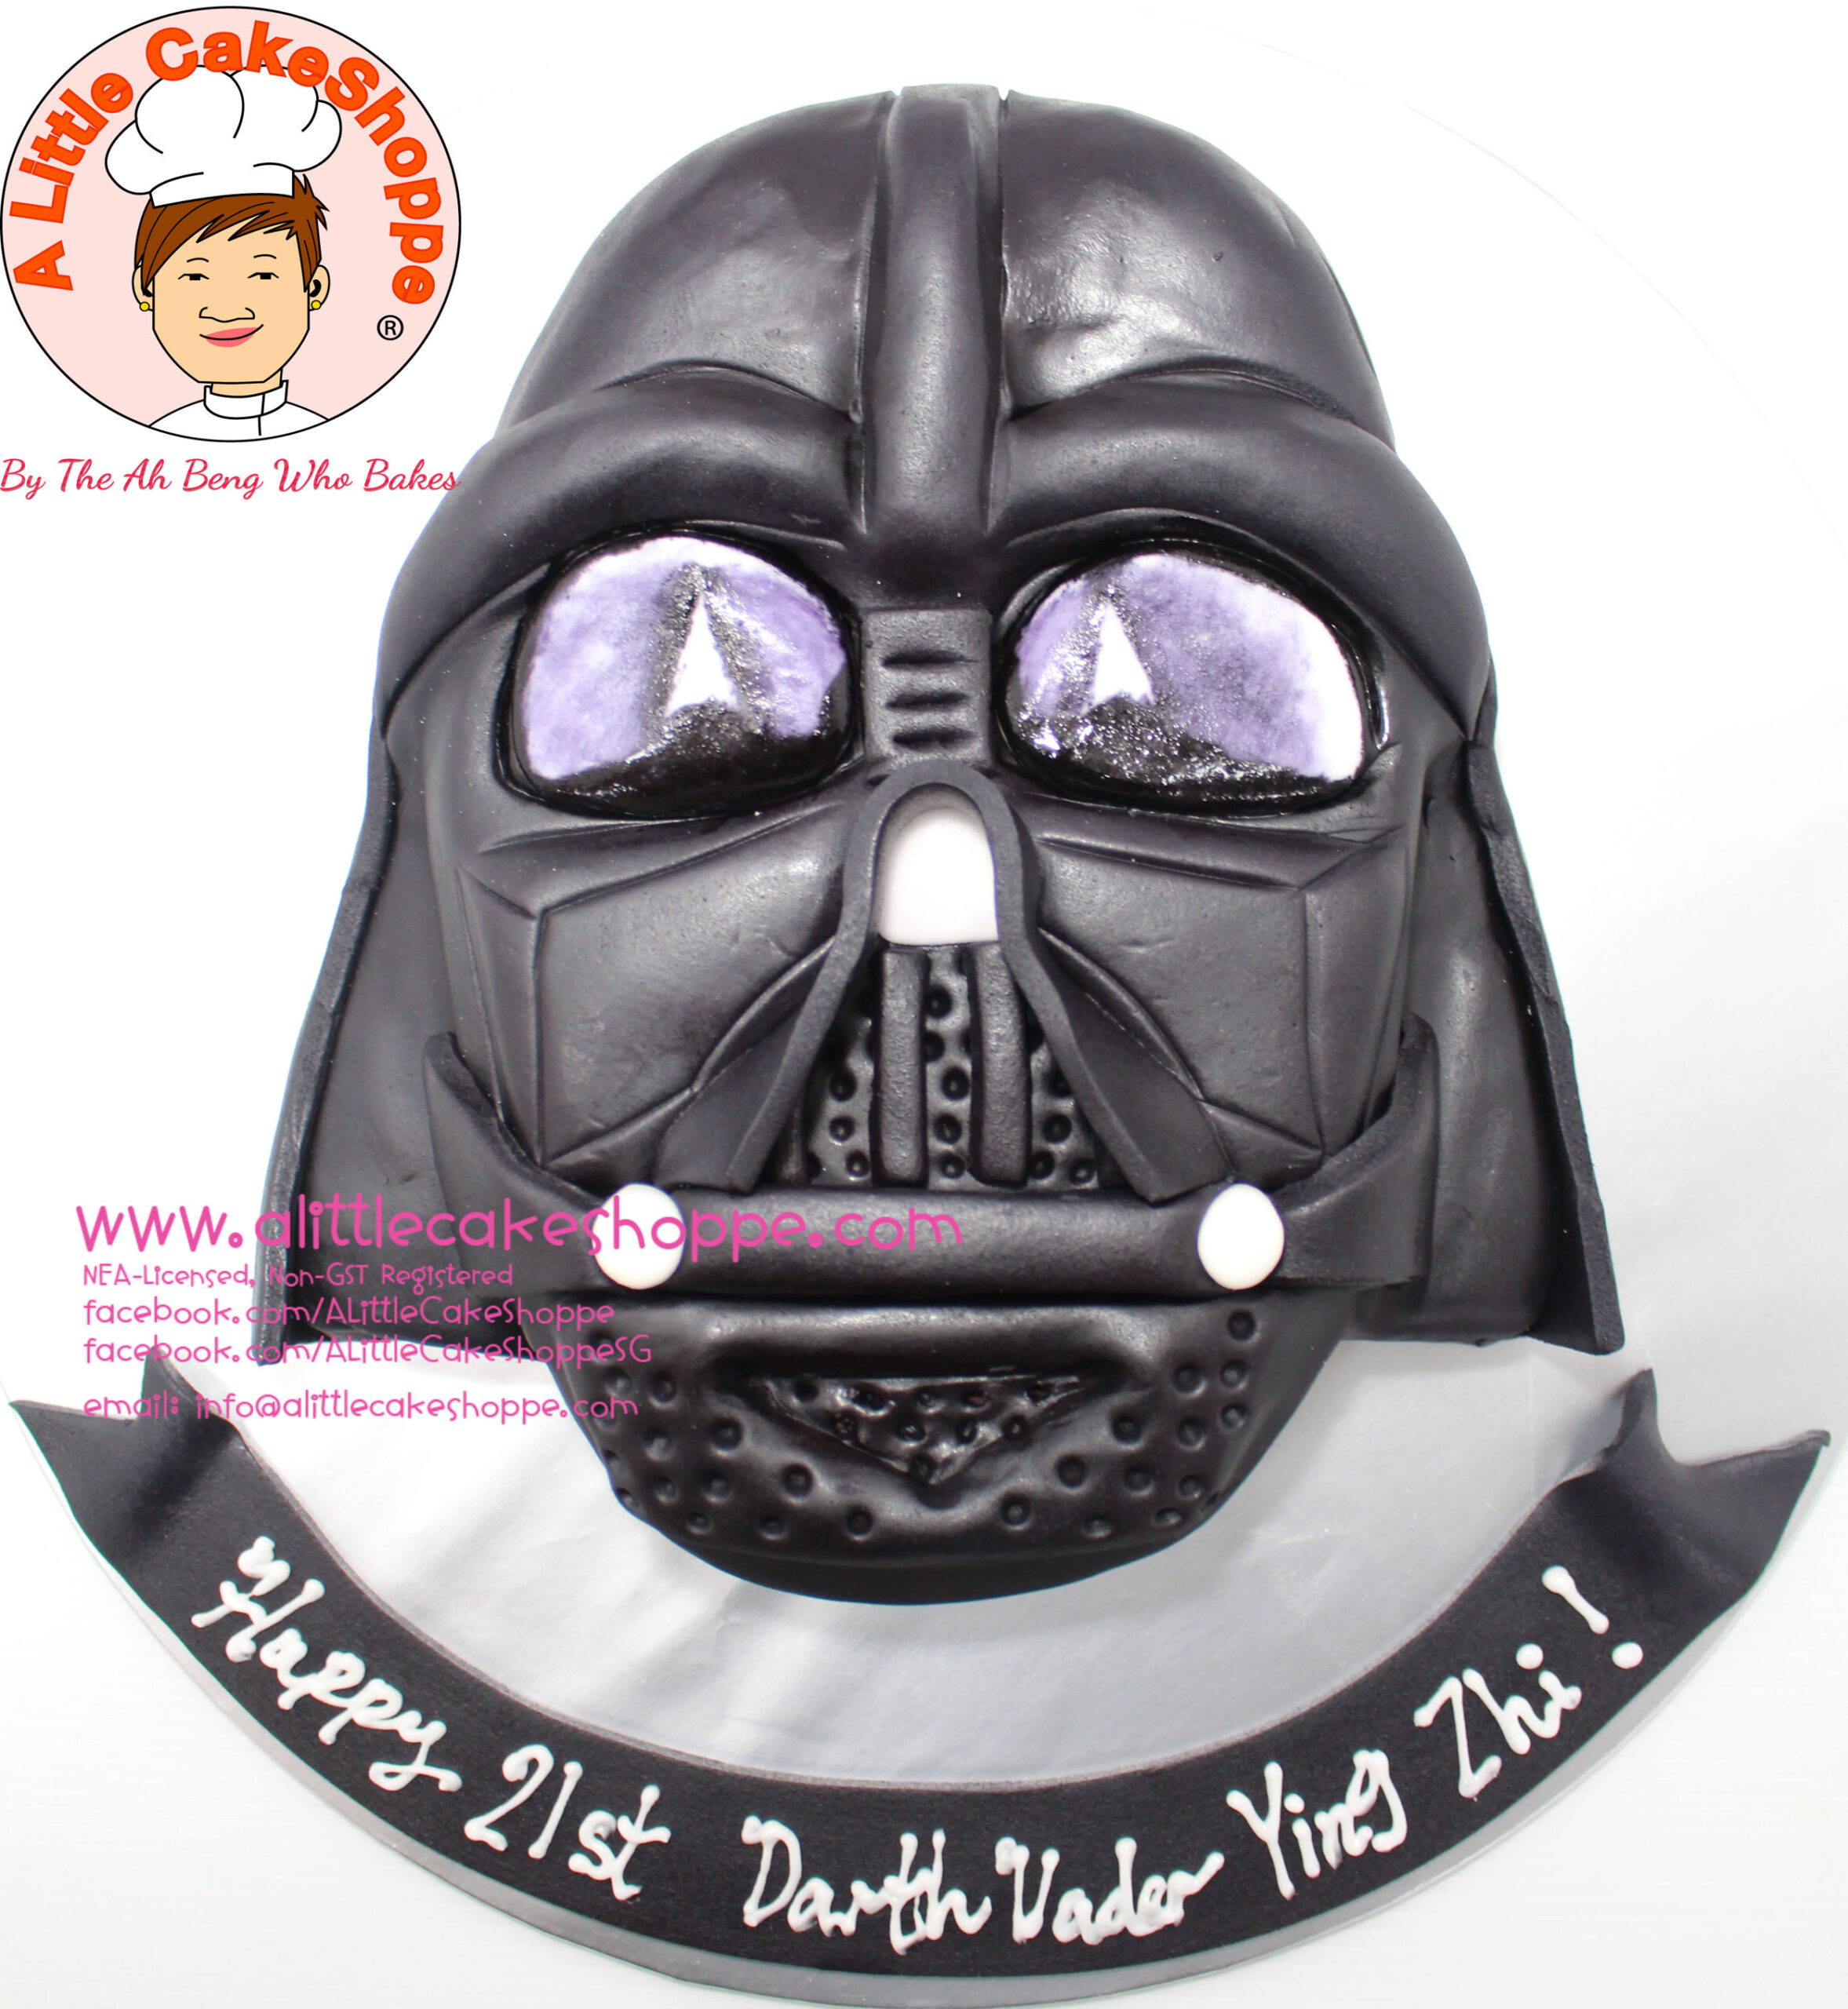 Best Customised Cake Singapore custom cake 2D 3D birthday cake cupcakes desserts wedding corporate events anniversary 1st birthday 21st birthday fondant fresh cream buttercream cakes alittlecakeshoppe a little cake shoppe compliments review singapore bakers SG cakeshop ah beng who bakes starwars stormtroopers lego